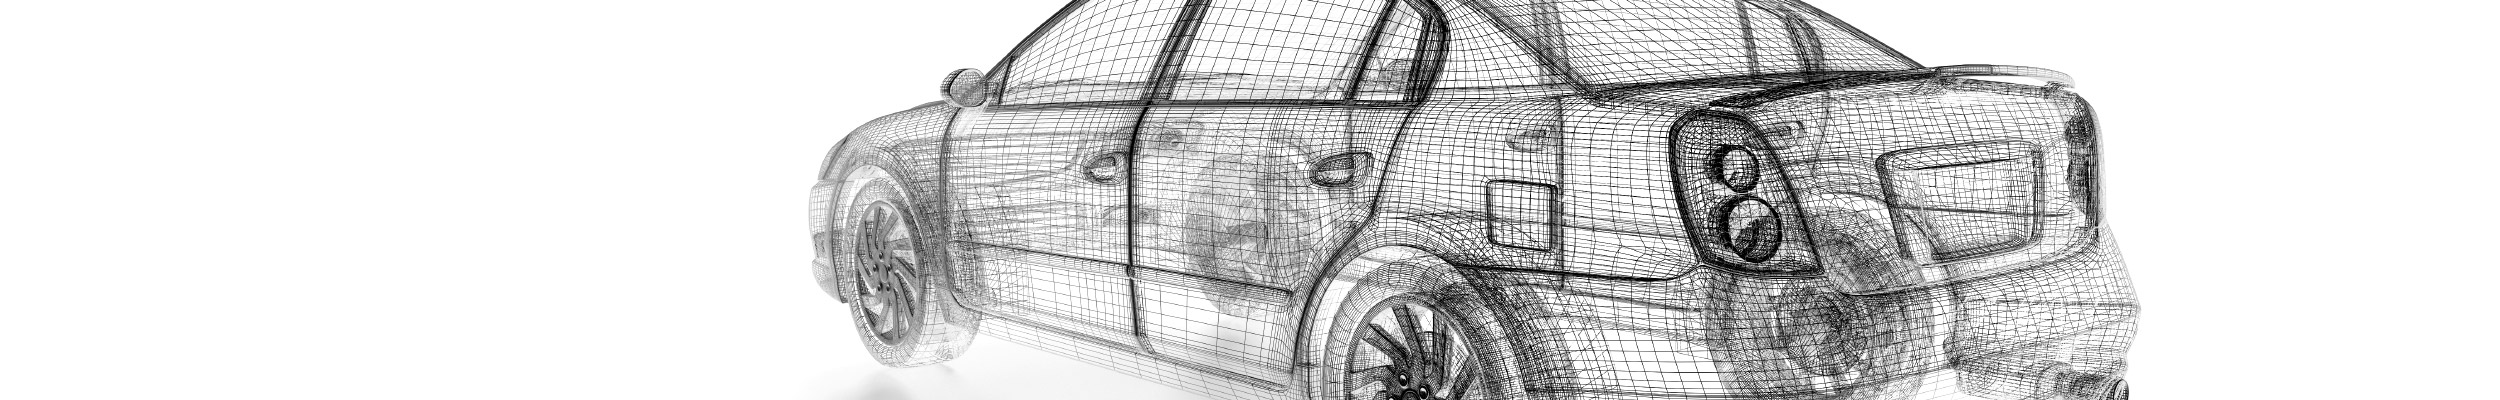 Wireframe Diagram of Car Dhell